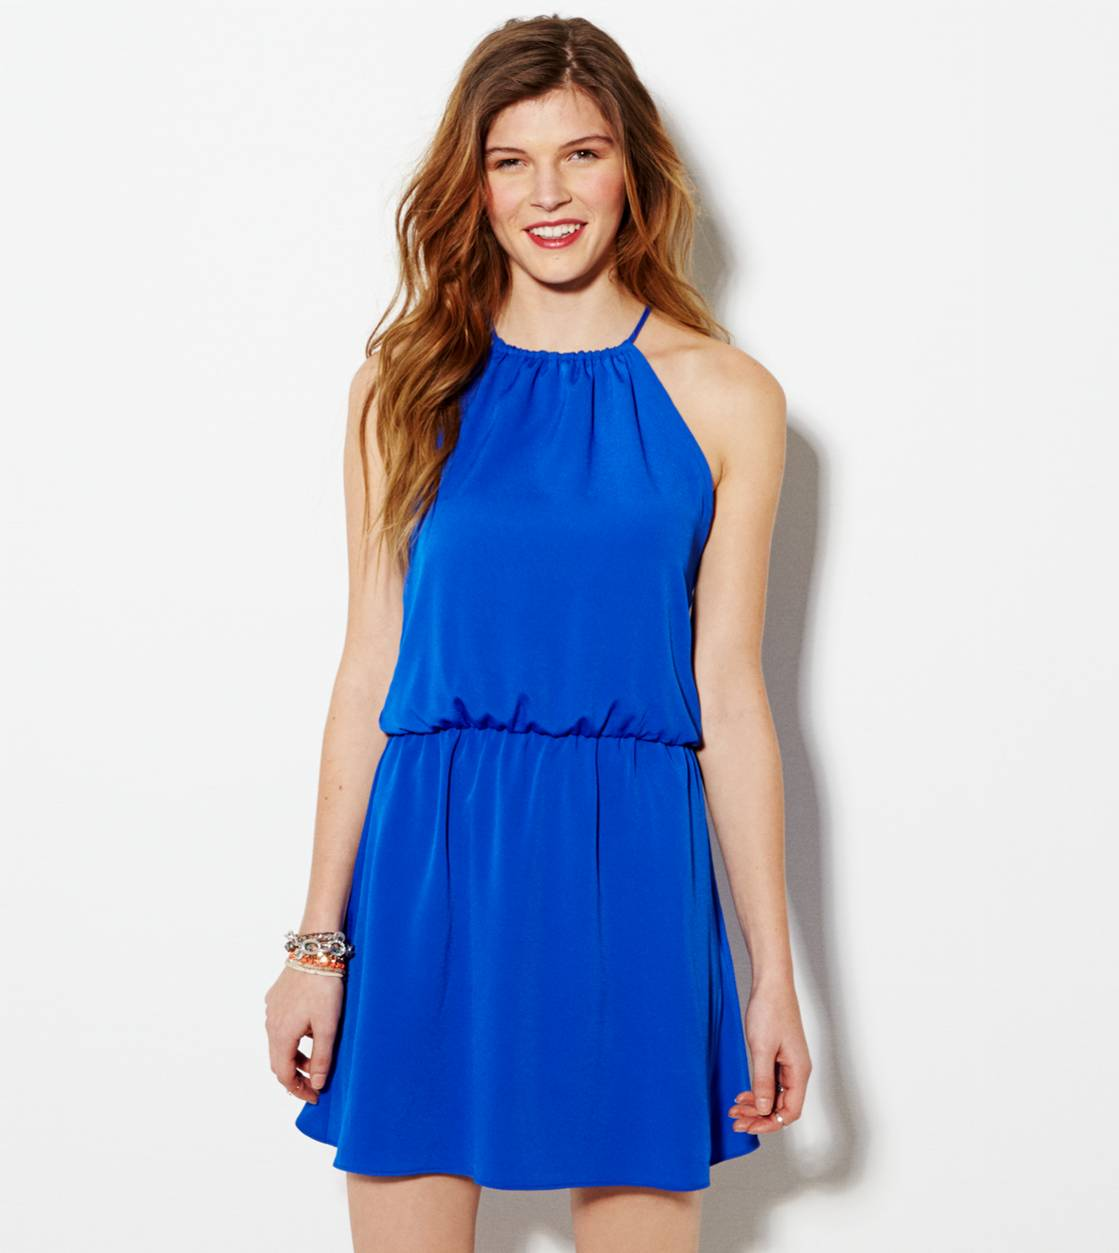 Electric Cobalt AE Halter Party Dress